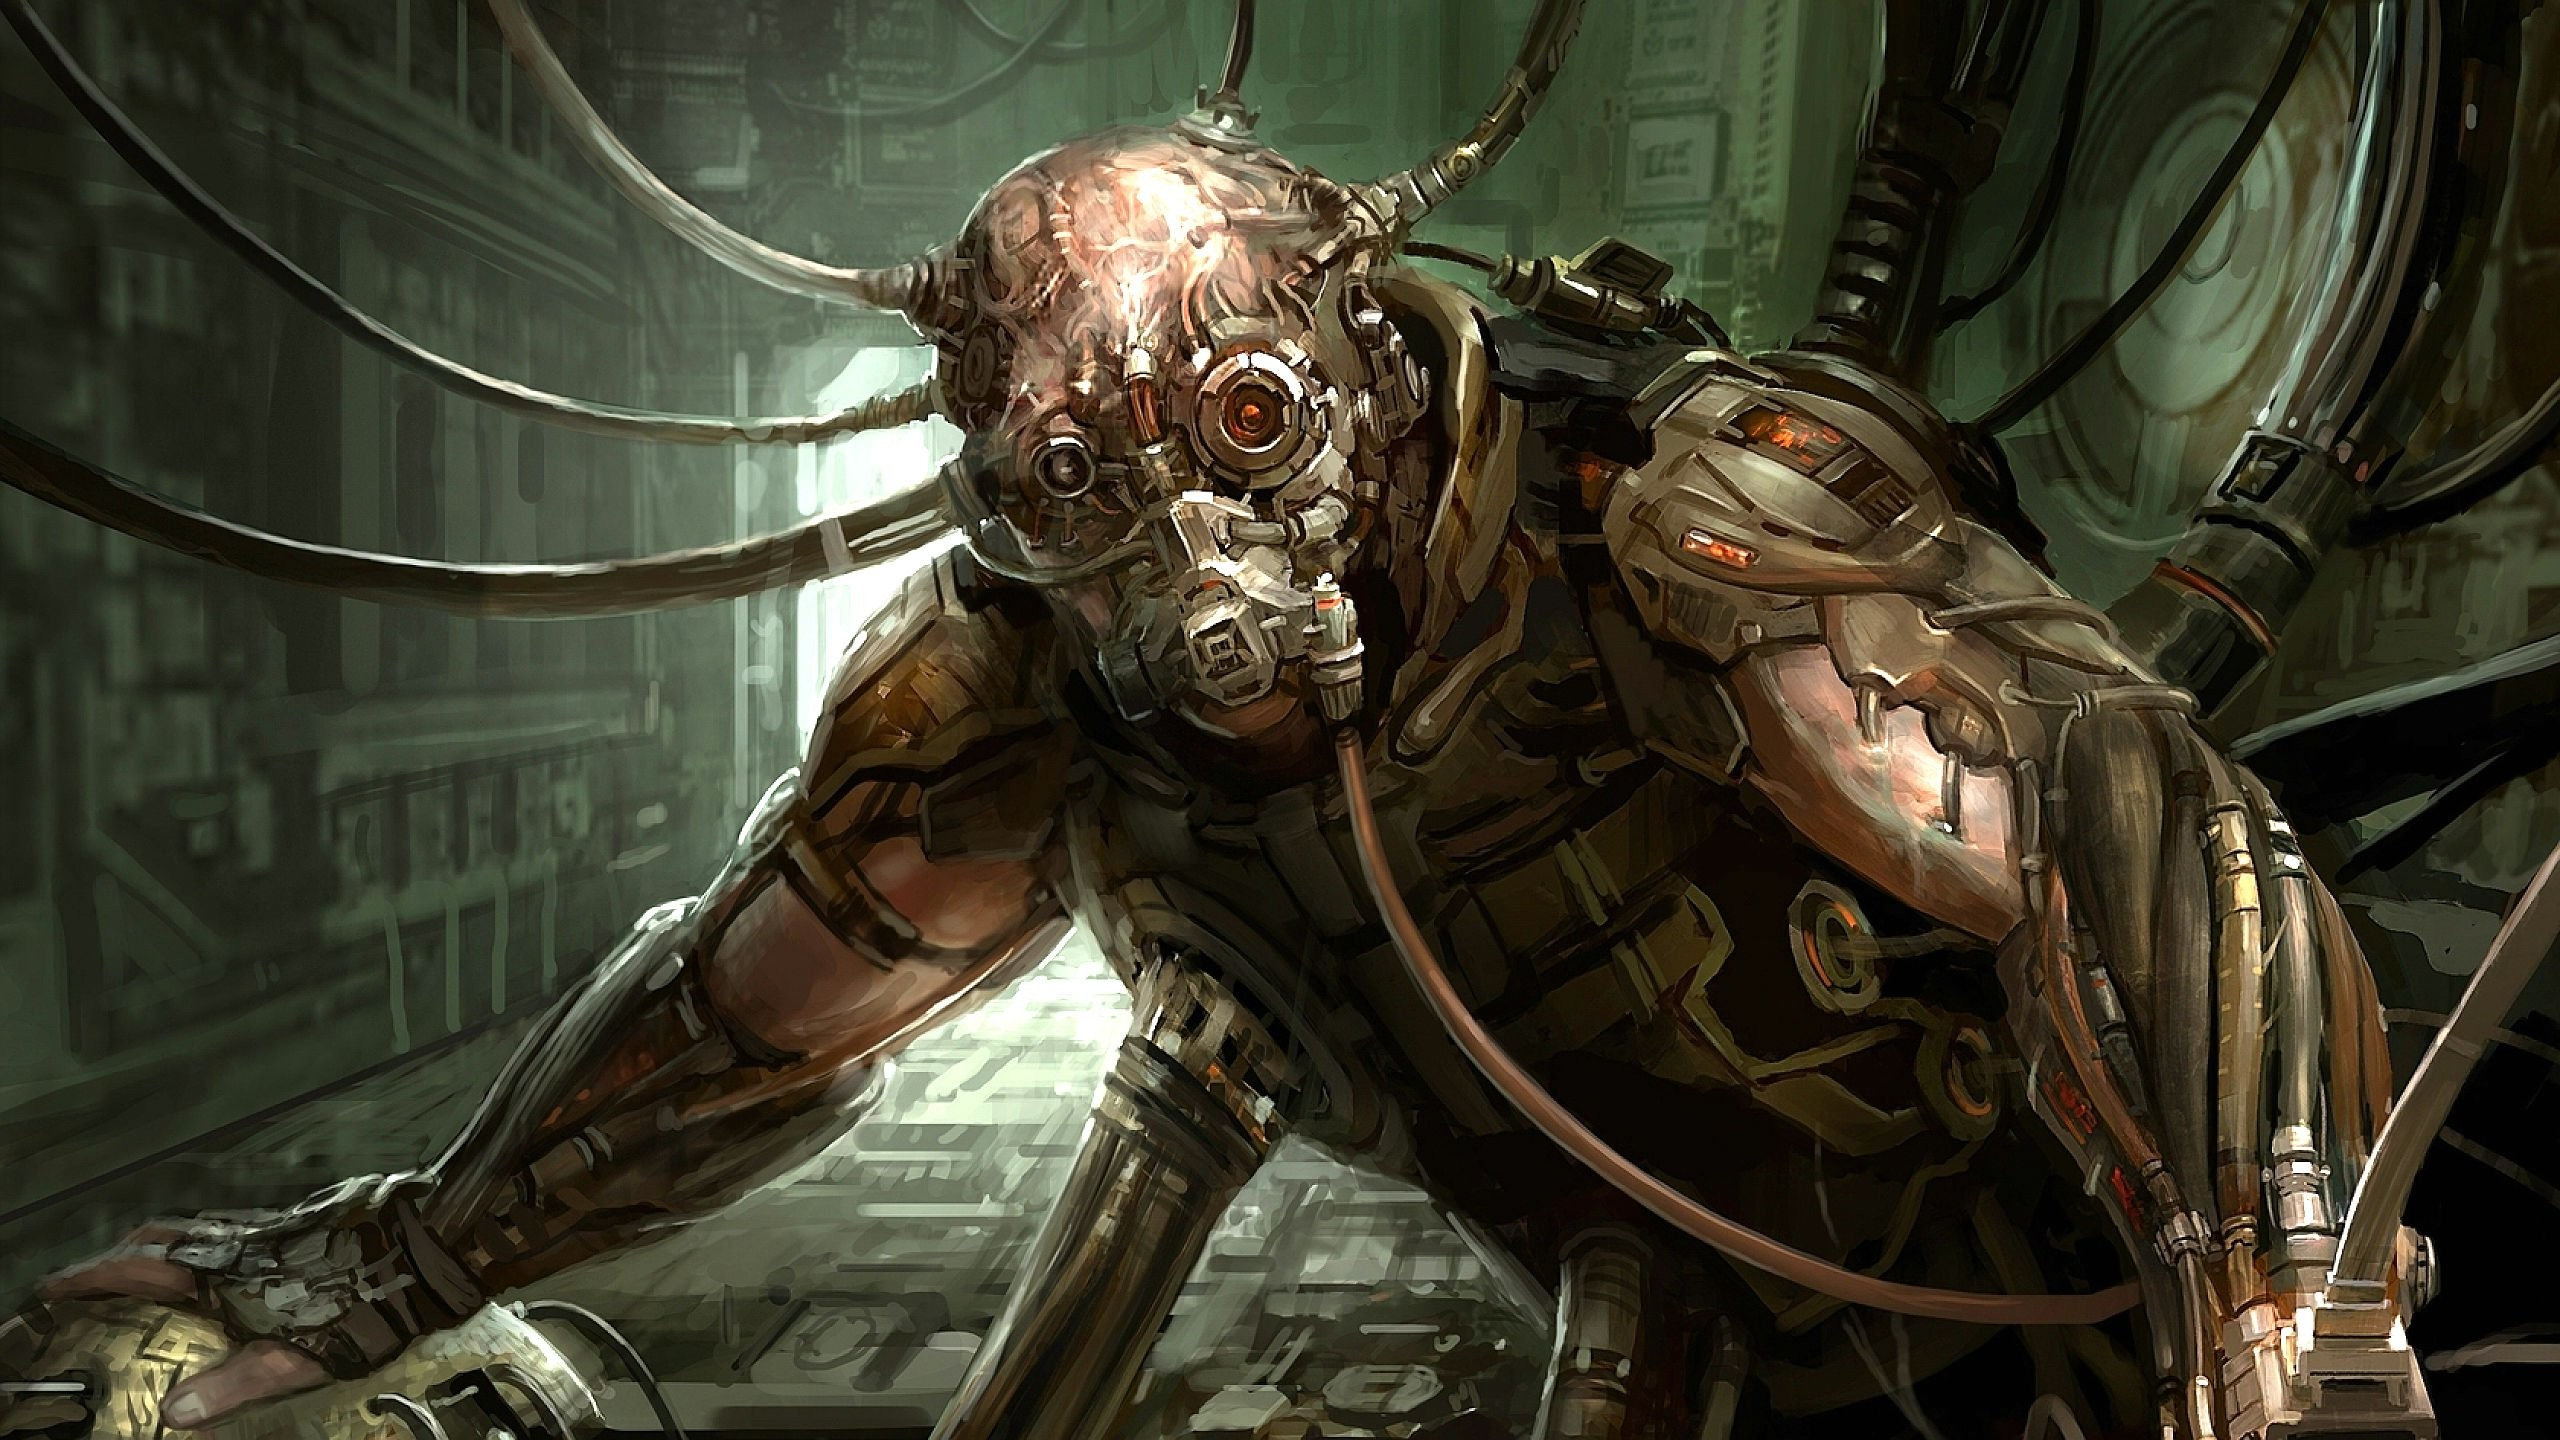 Image result for cyberpunk cyborgs